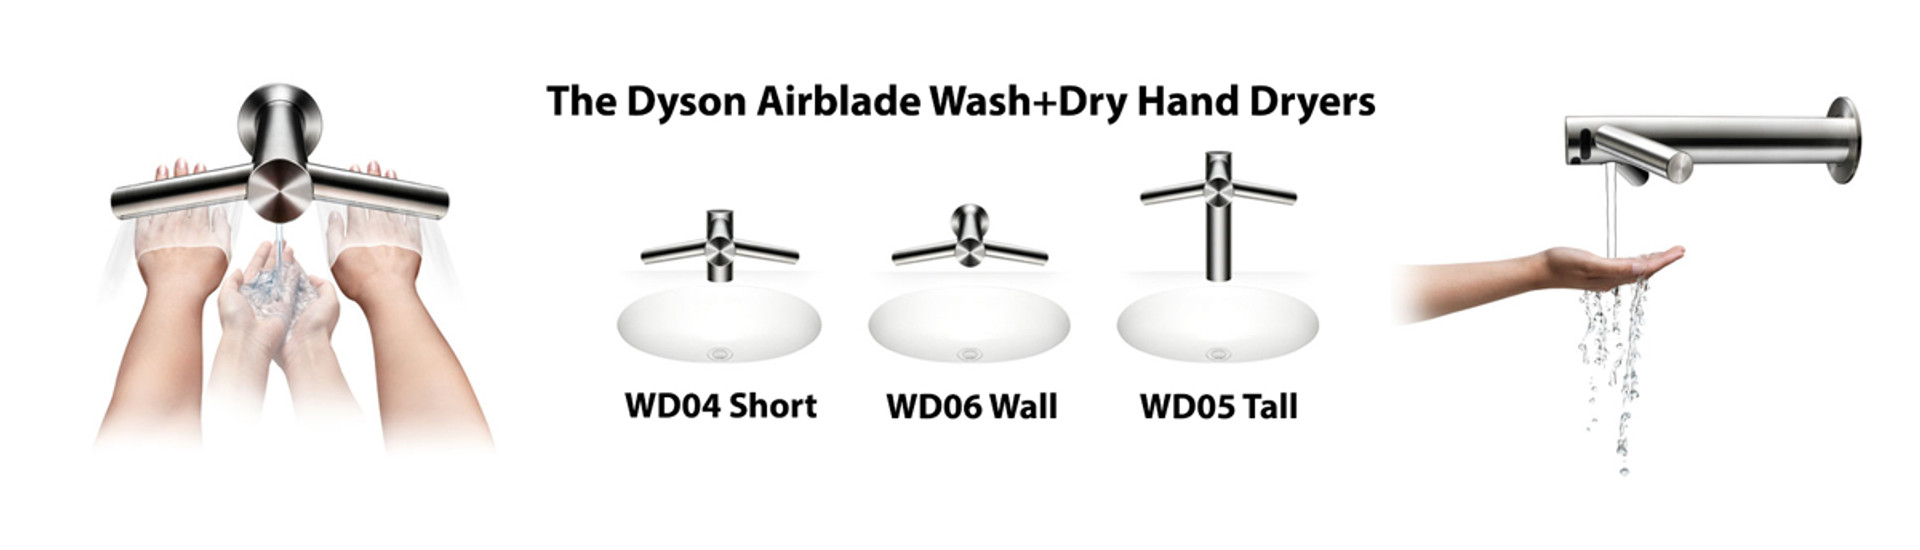 Dyson Airblade Wash+Dry Hand Dryers